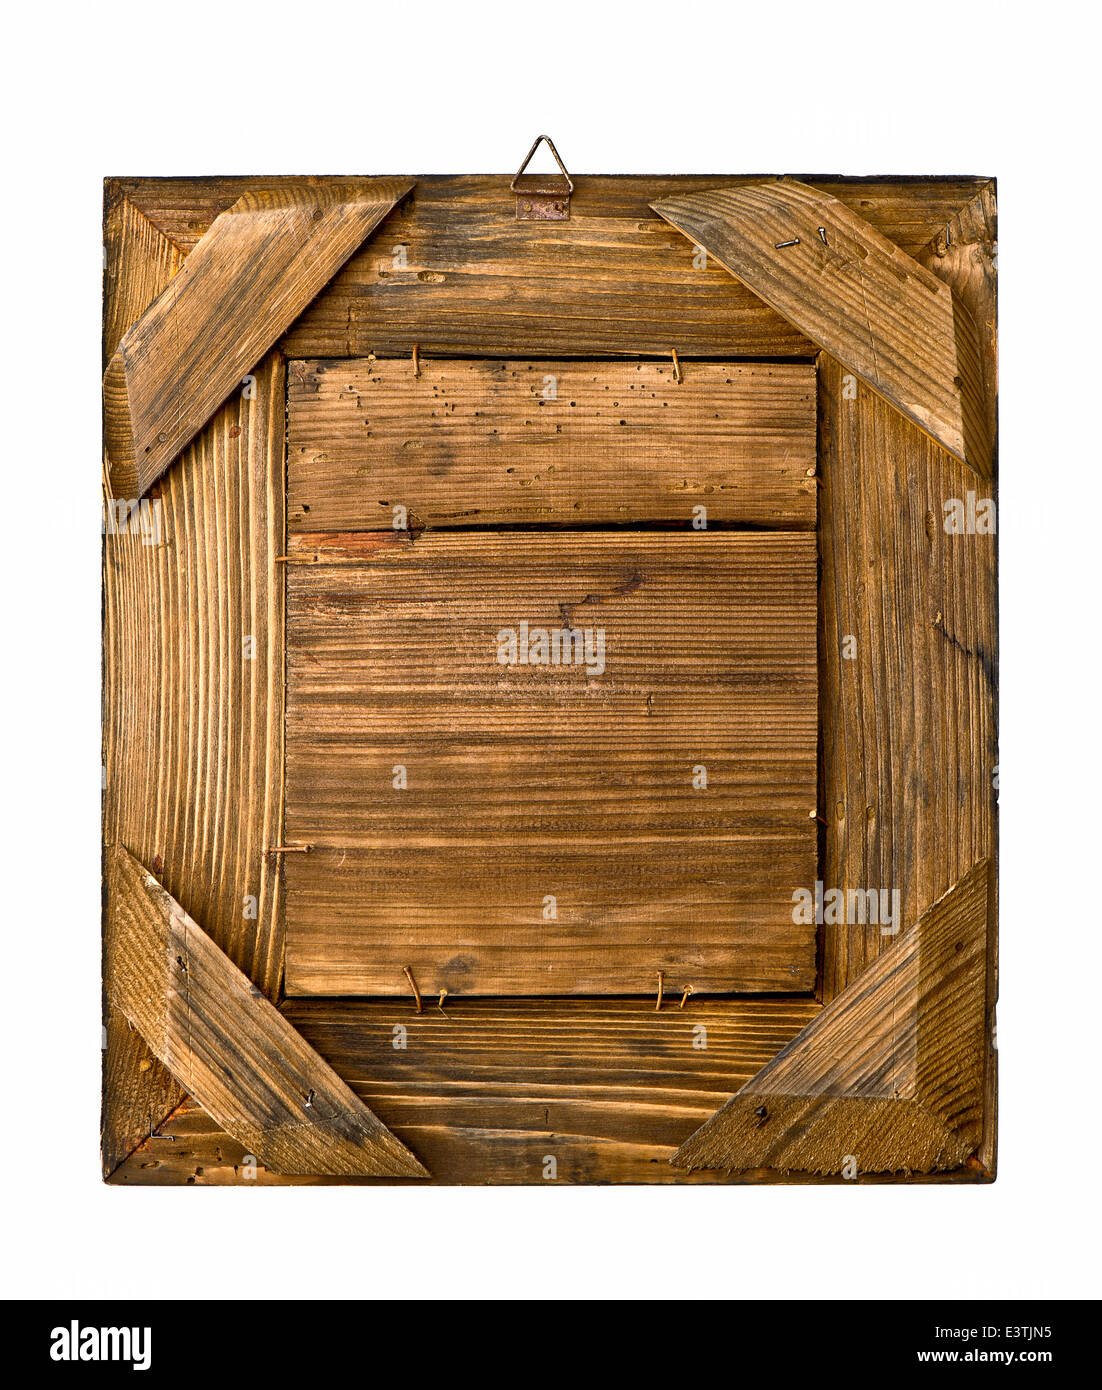 Merveilleux Aged Rustic Wooden Frame On White Background